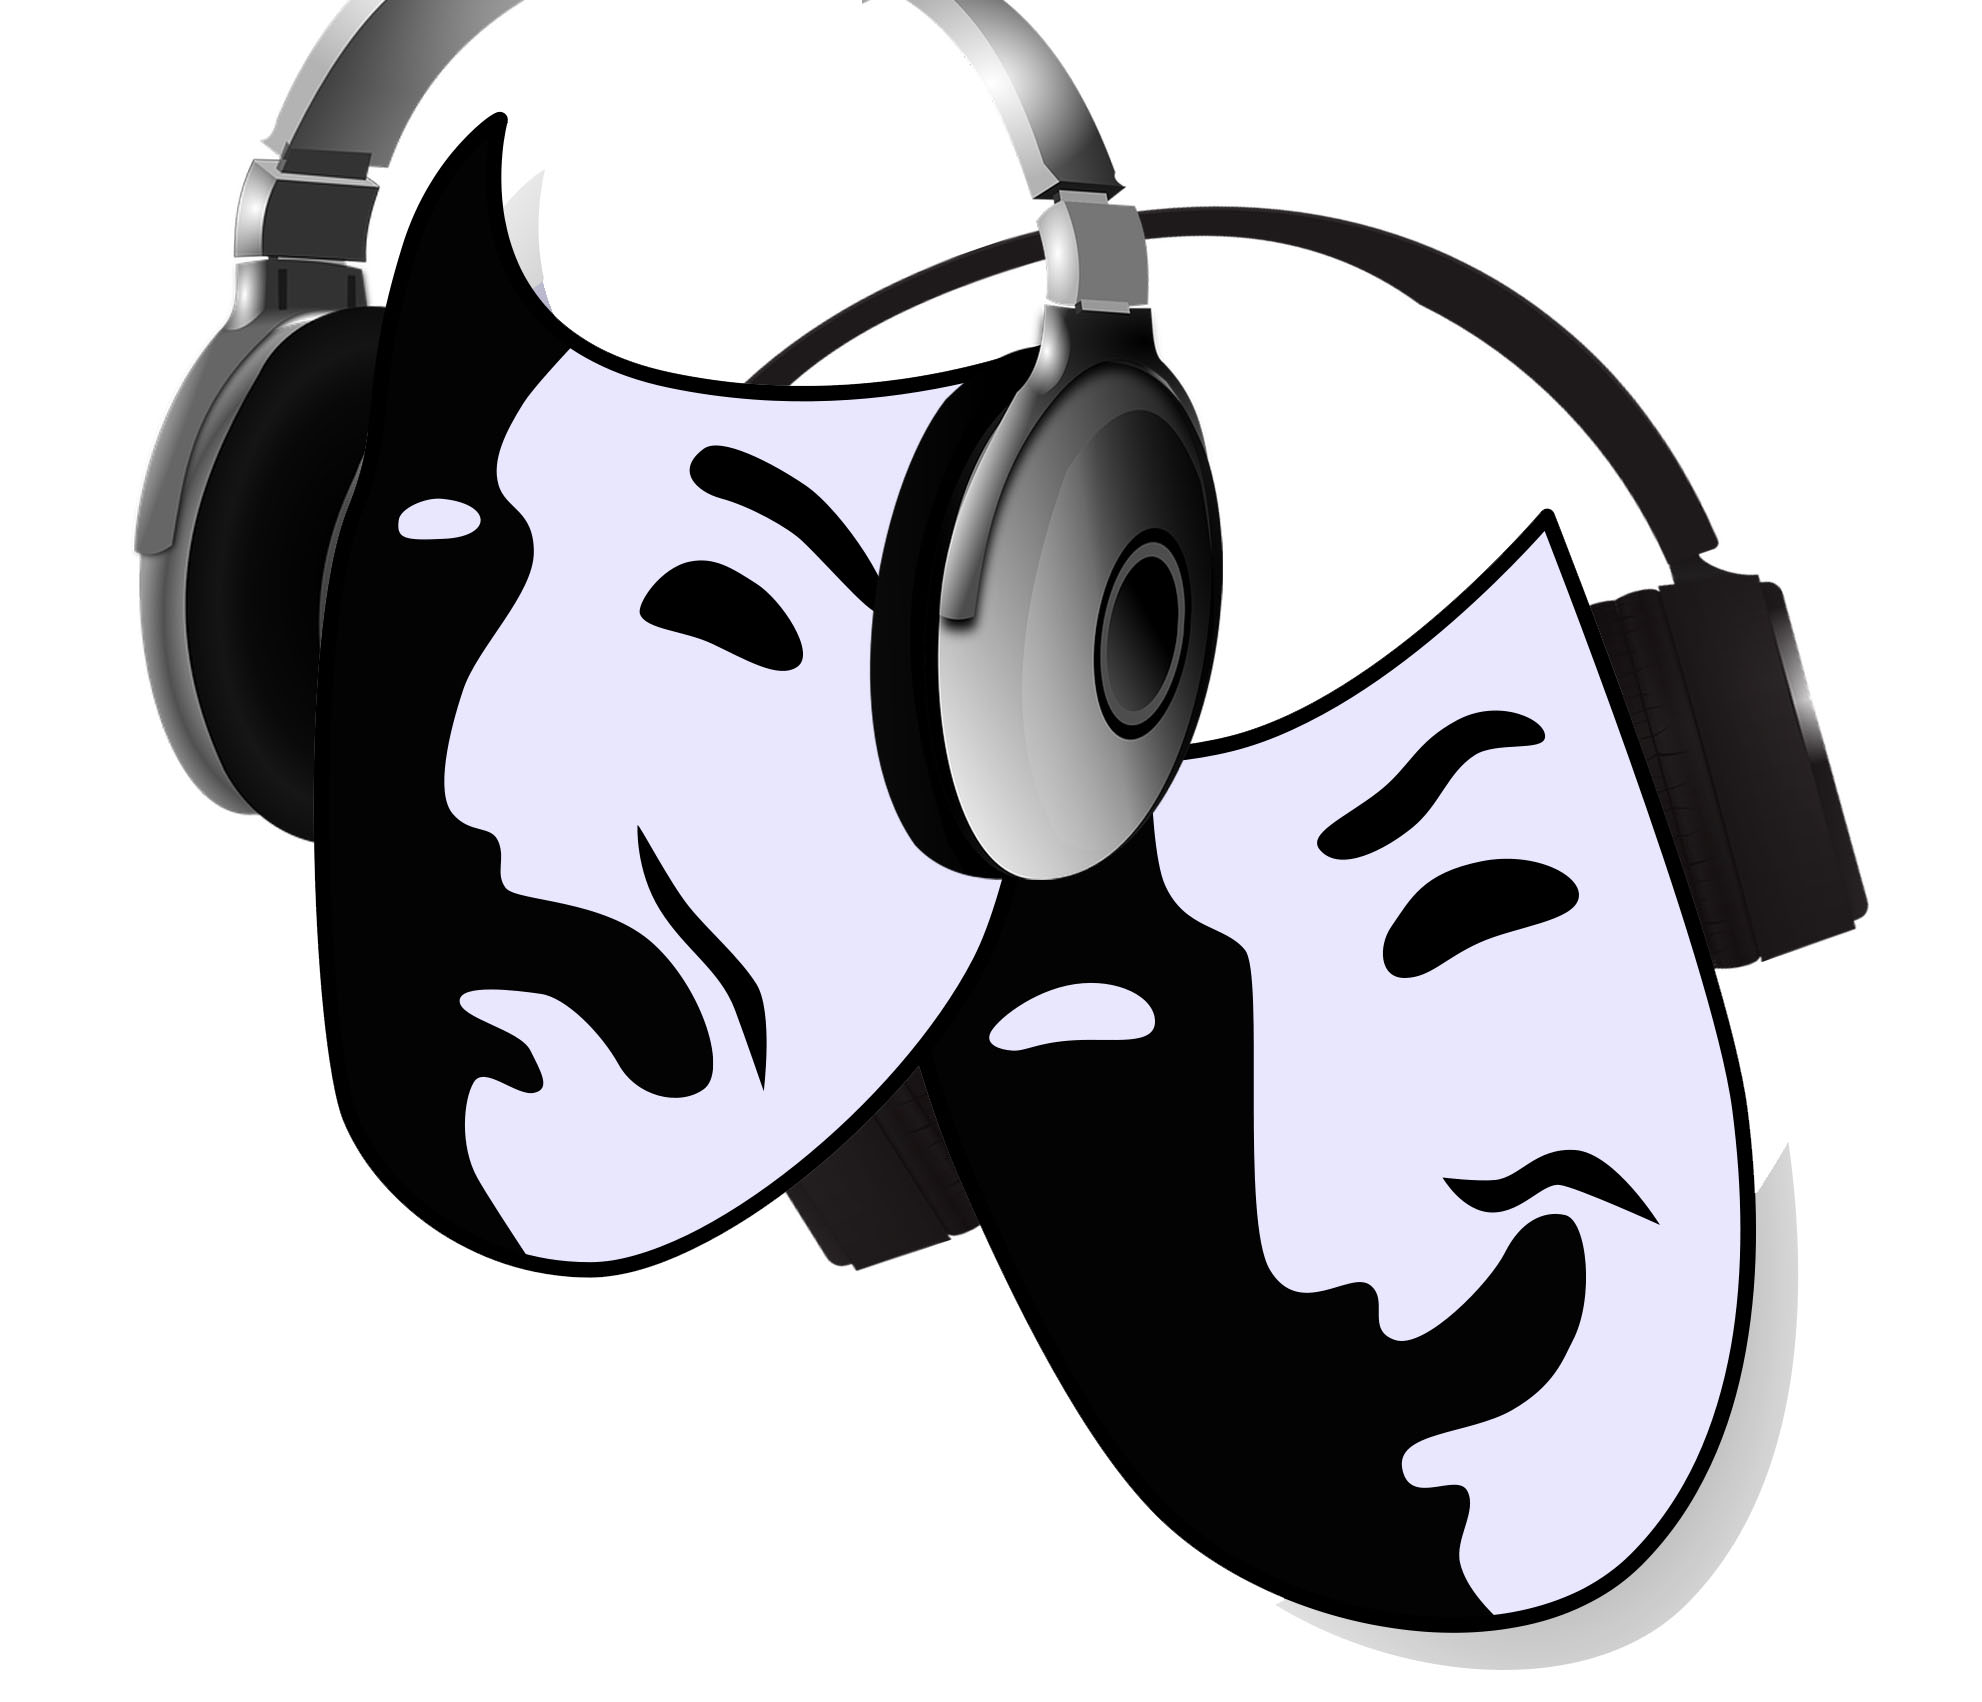 Stage manager cliparts headset image free stock Sound Design for Theater: Another Medium for Our Craft image free stock